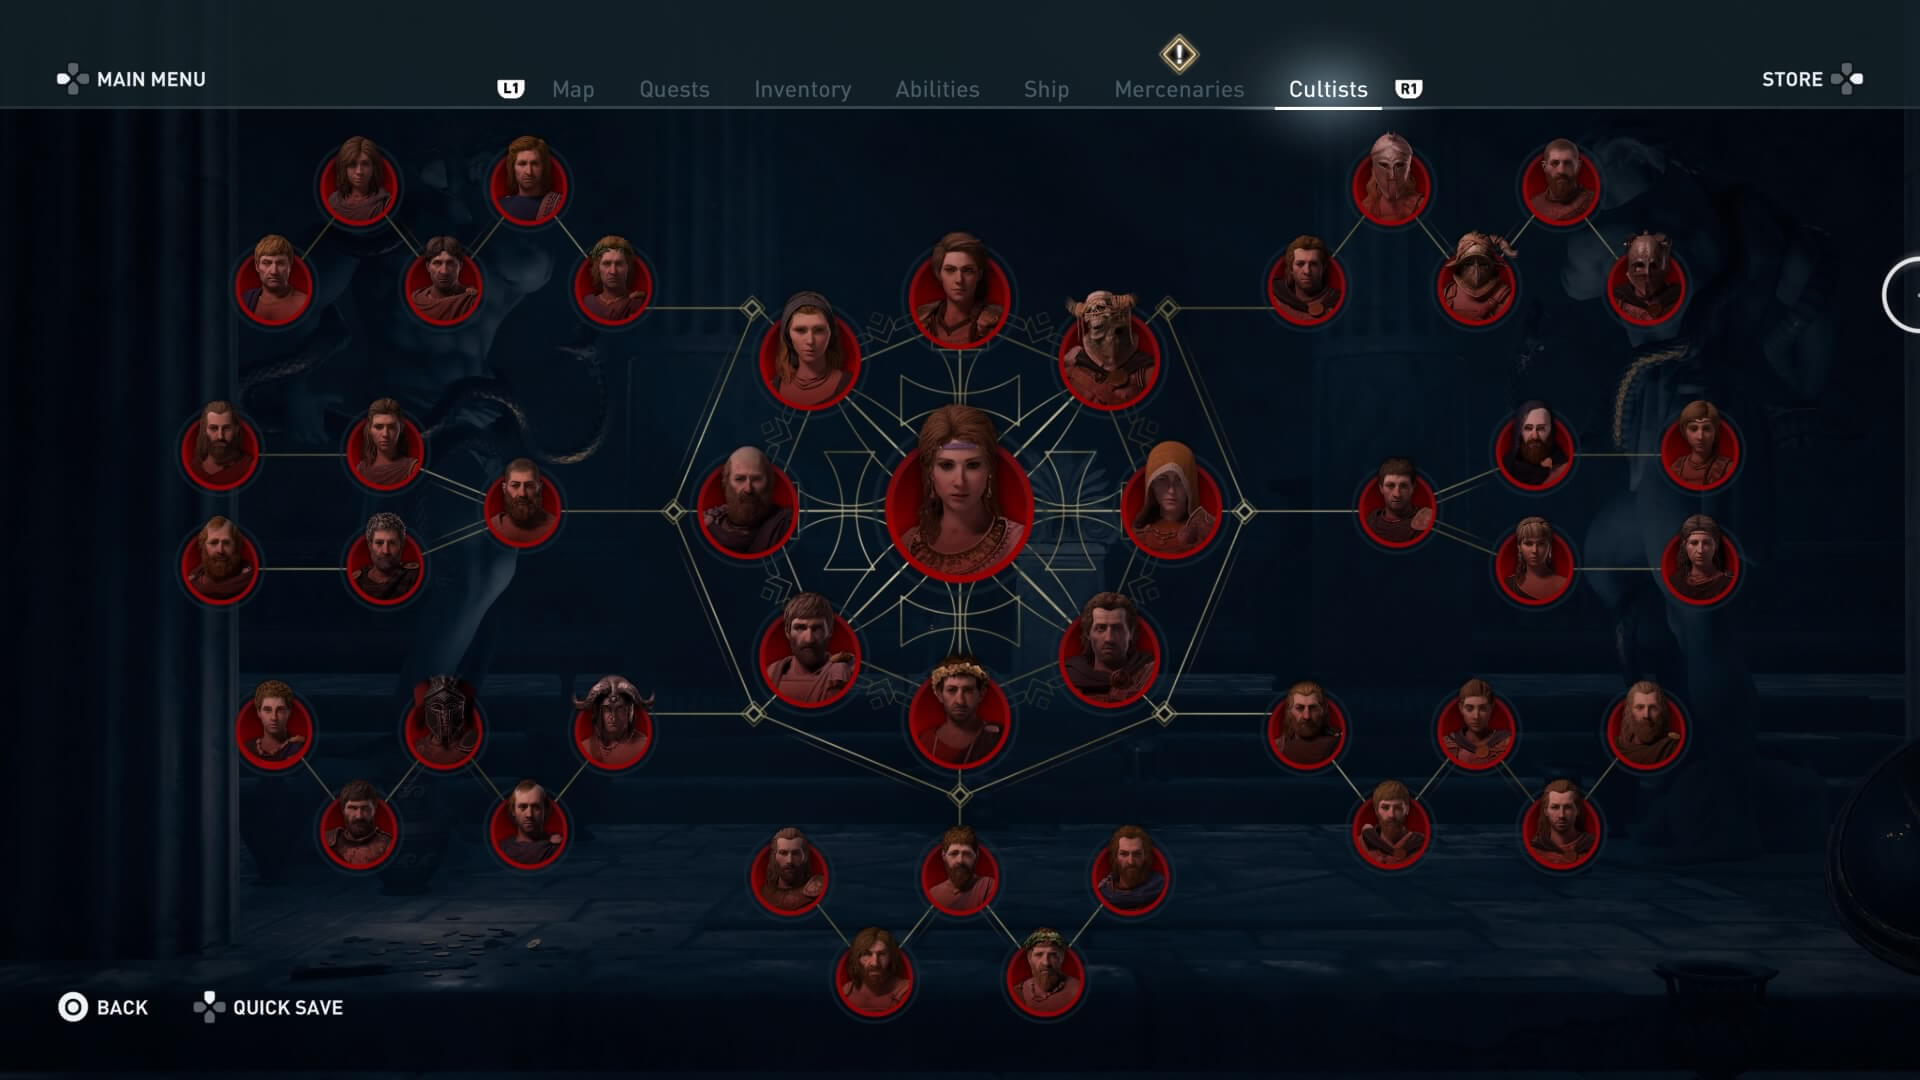 Assassins Creed® Odyssey 20181103230350 - Assassin's Creed Odyssey: confira o guia de dicas e truques do game